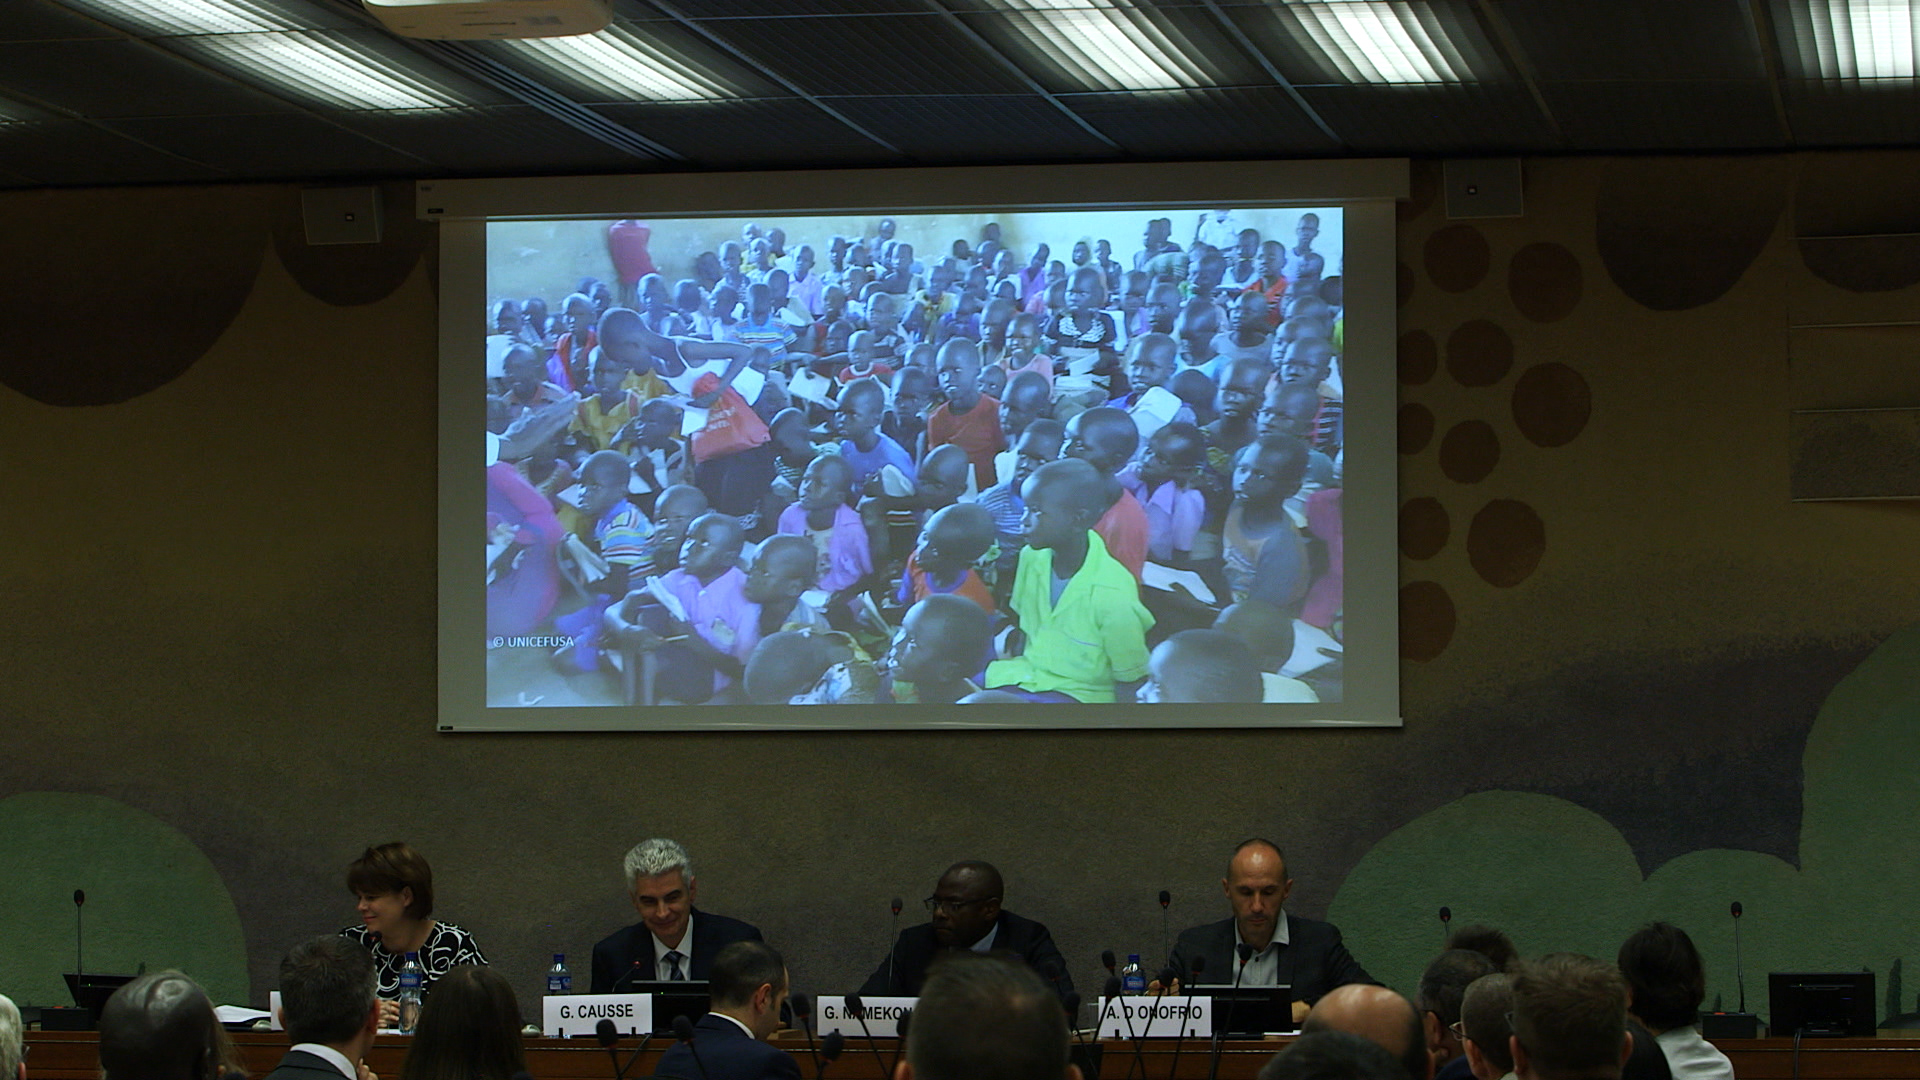 Latter-day Saint Charities hosts an event at the United Nations in Geneva, Tuesday, Sept. 17, 2019.